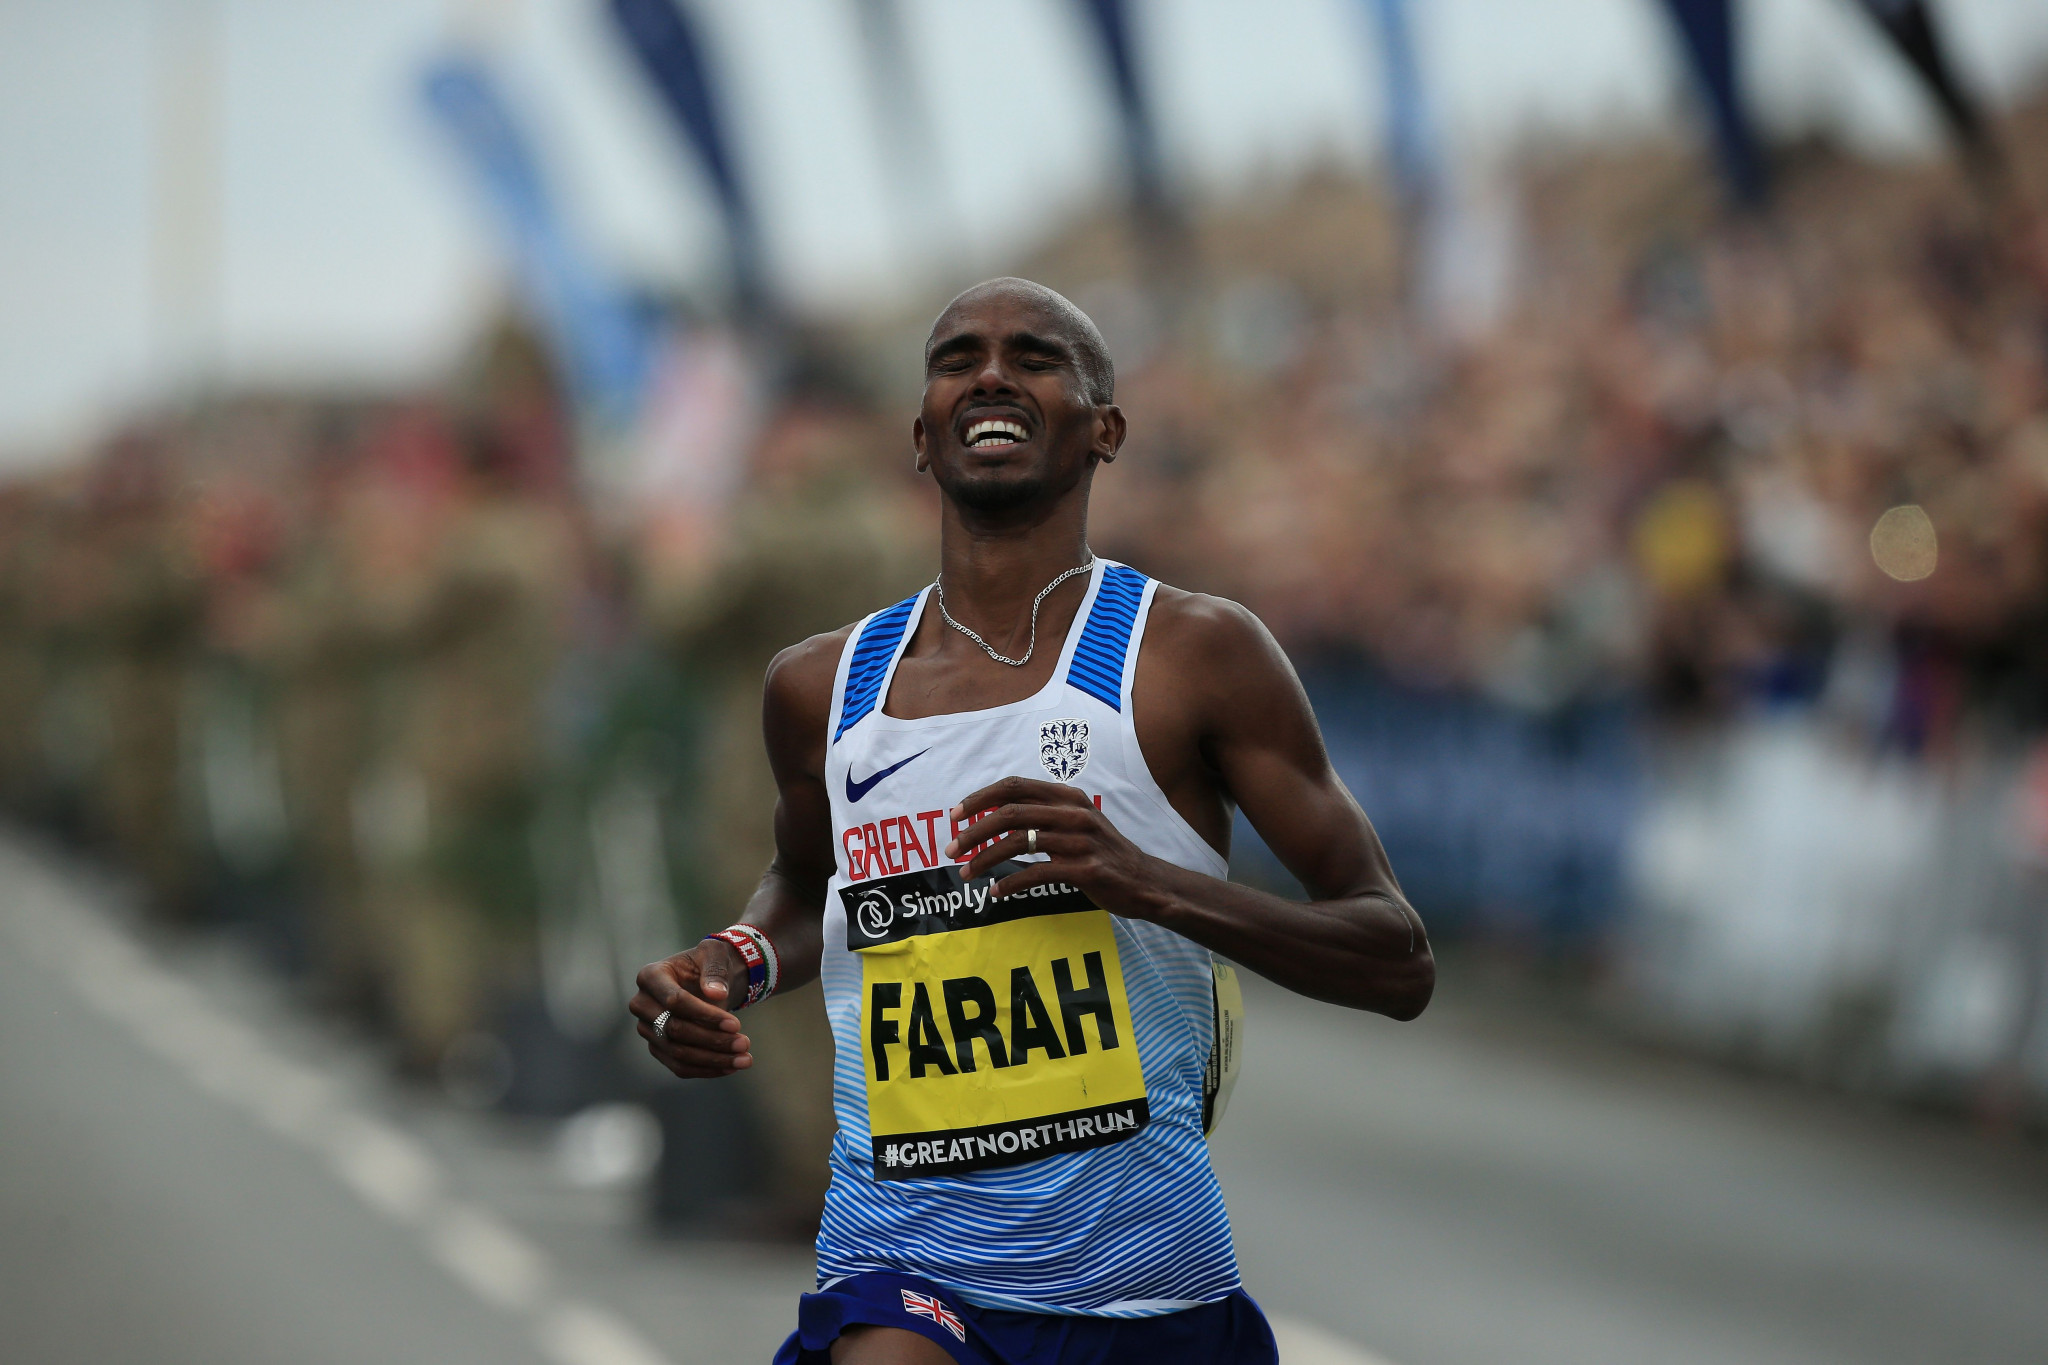 Farah denies split from Salazar connected to doping allegations